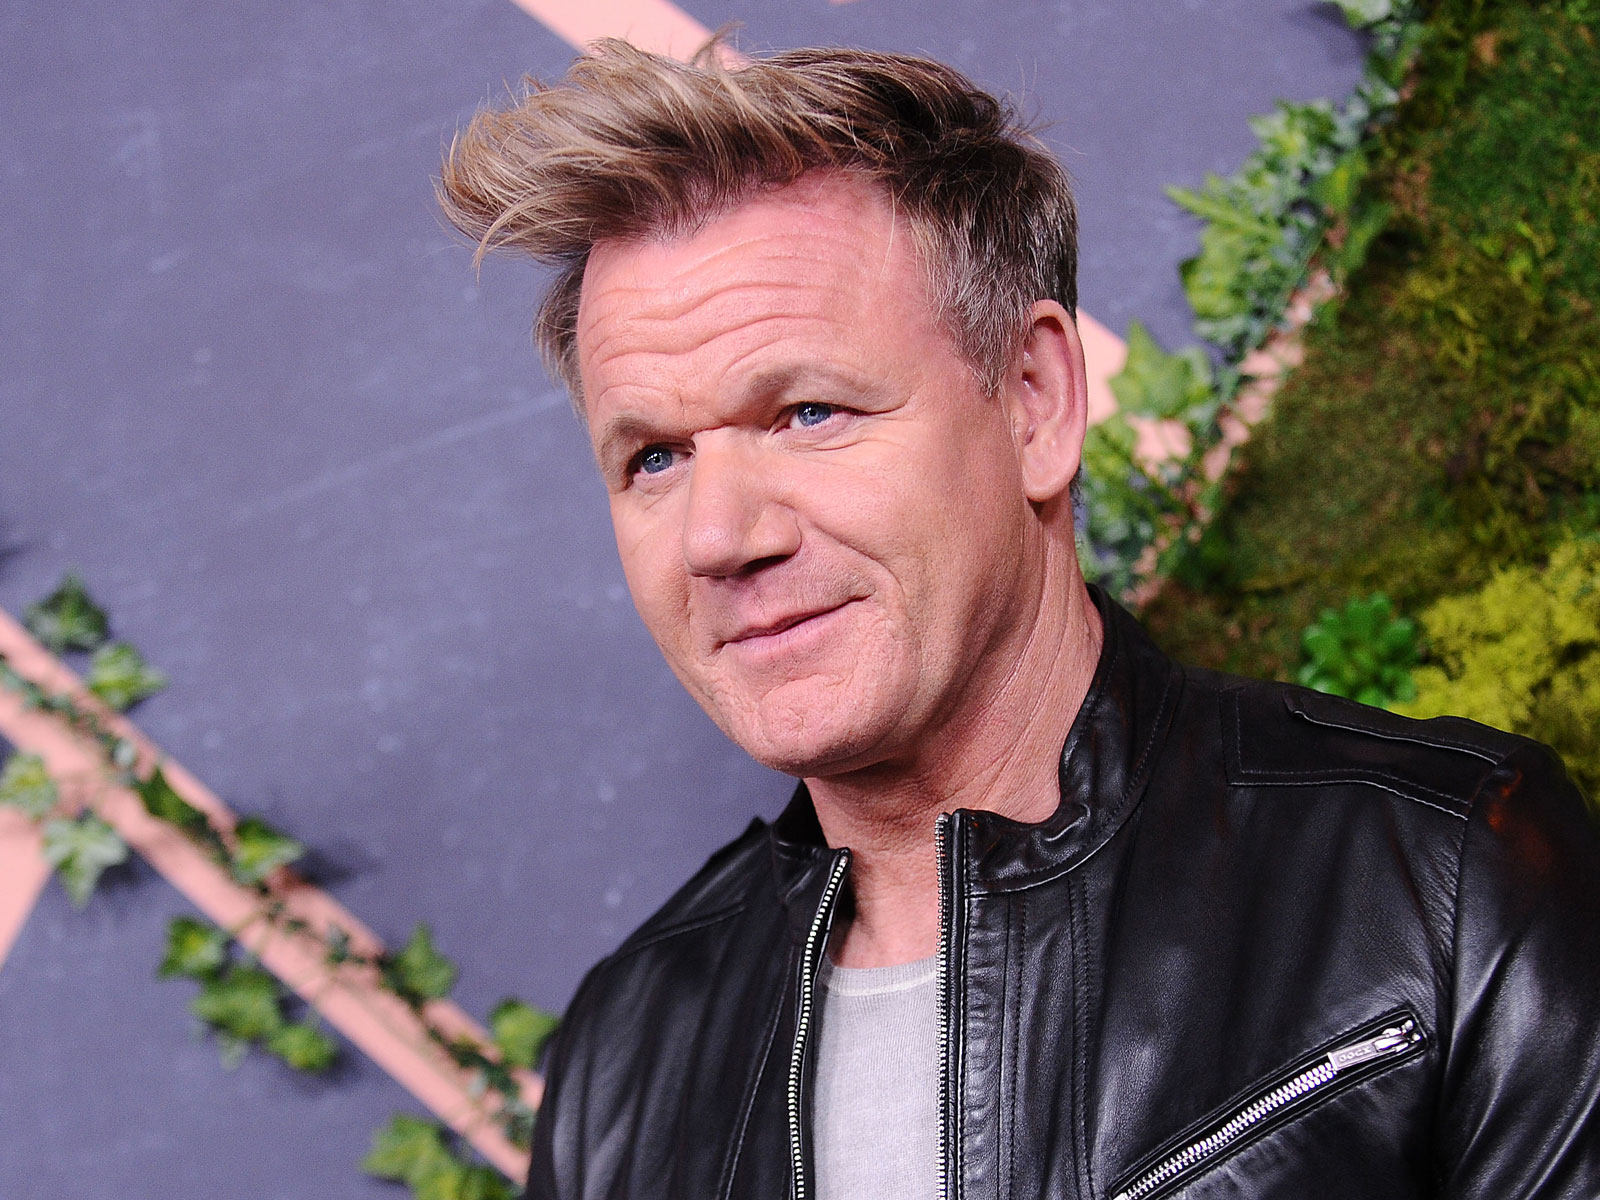 Video of Gordon Ramsay Making Pad Thai Proves He's Not Immune to Criticism